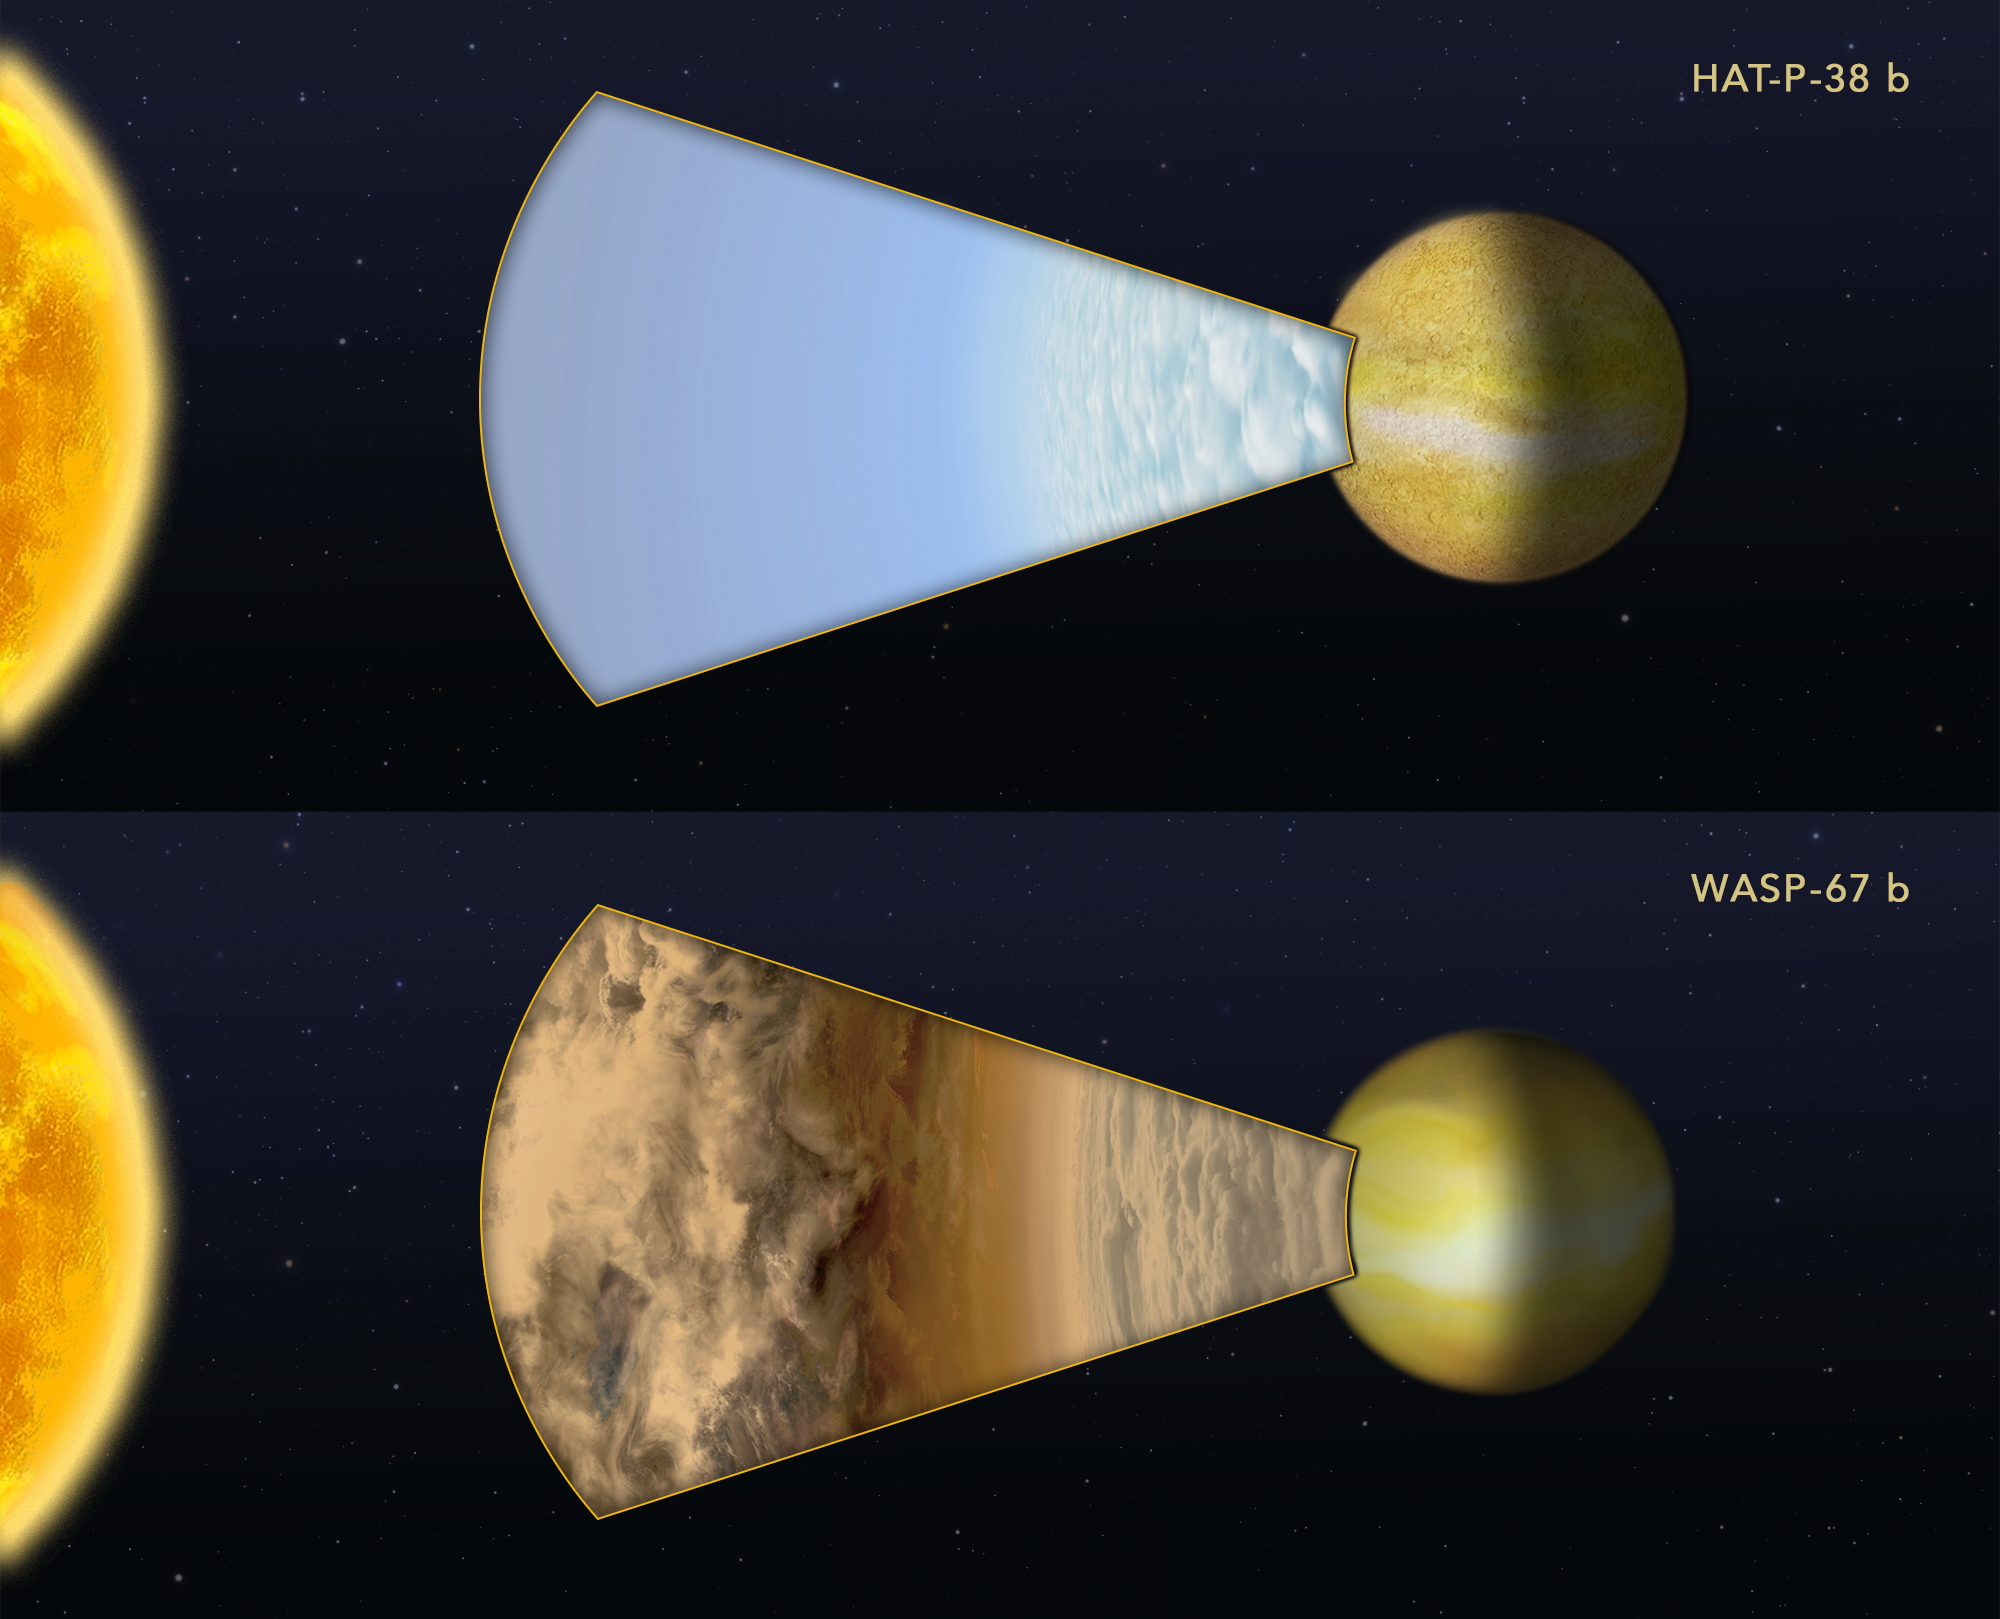 """This diagram compares Hubble Space Telescope observations of two """"hot Jupiter""""-class planets orbiting very closely to different sunlike stars. Astronomers measured how light from each parent star is filtered through each planet's atmosphere. HAT-P-38 b did have a water signature indicated by the absorption-feature peak in the spectrum. This is interpreted as indicating the upper atmosphere is free of clouds or hazes. WASP-67 b, has a flat spectrum that lacks any water-absorption feature, suggesting most of the planet's atmosphere is masked by high-altitude clouds. - Image Credits: Artwork: NASA, ESA, and Z. Levy (STScI); Credit: Science: NASA, ESA, and G. Bruno (STScI)"""